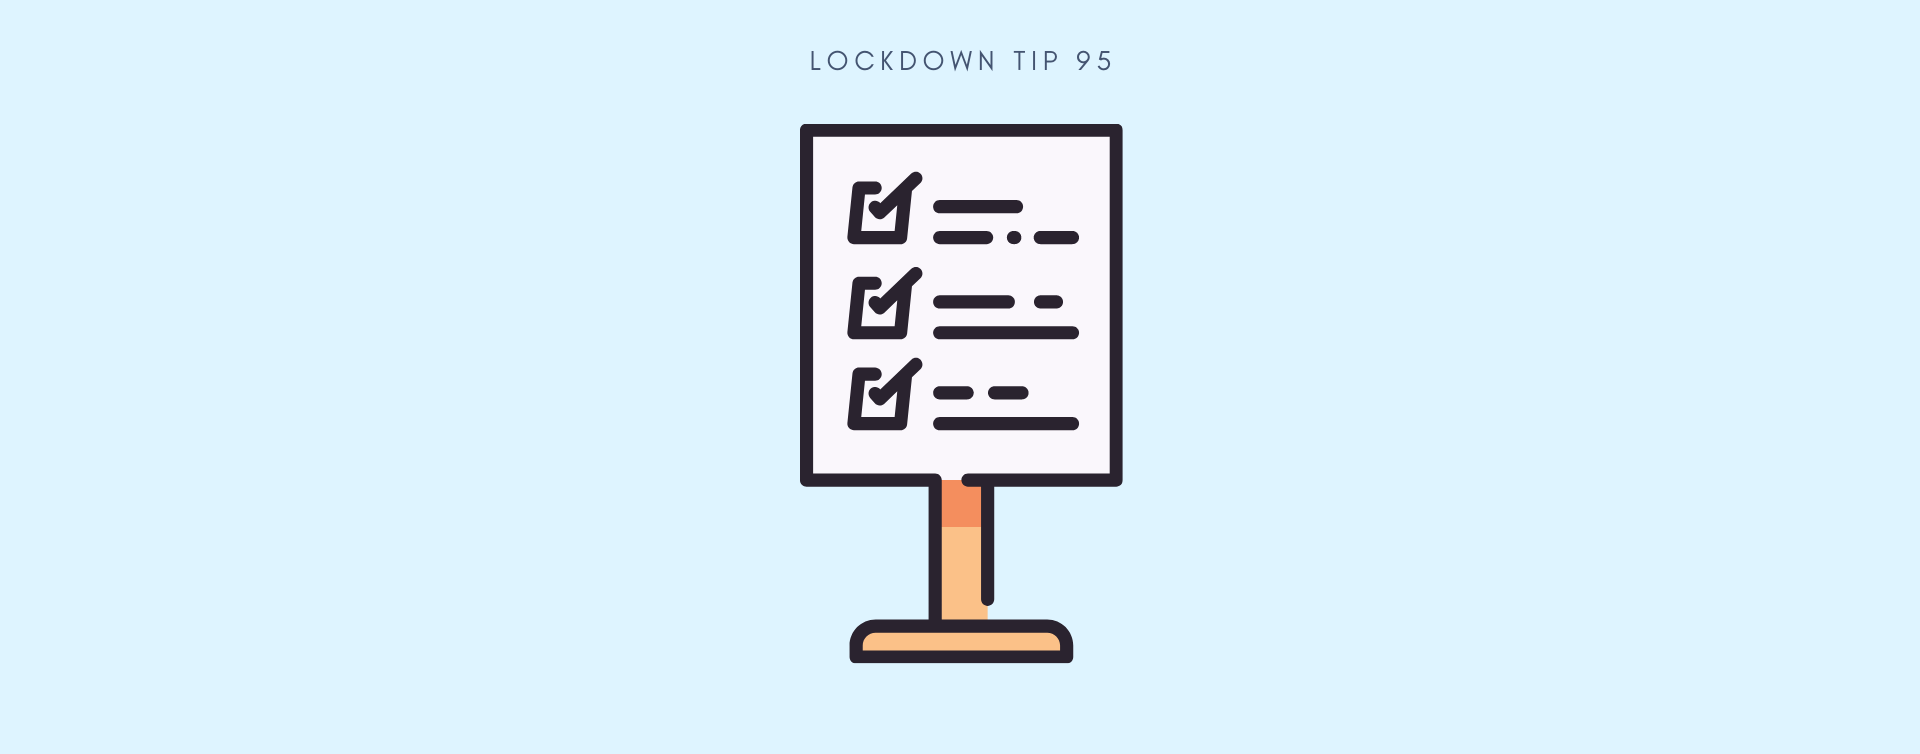 MCSA Lockdown Tip 95